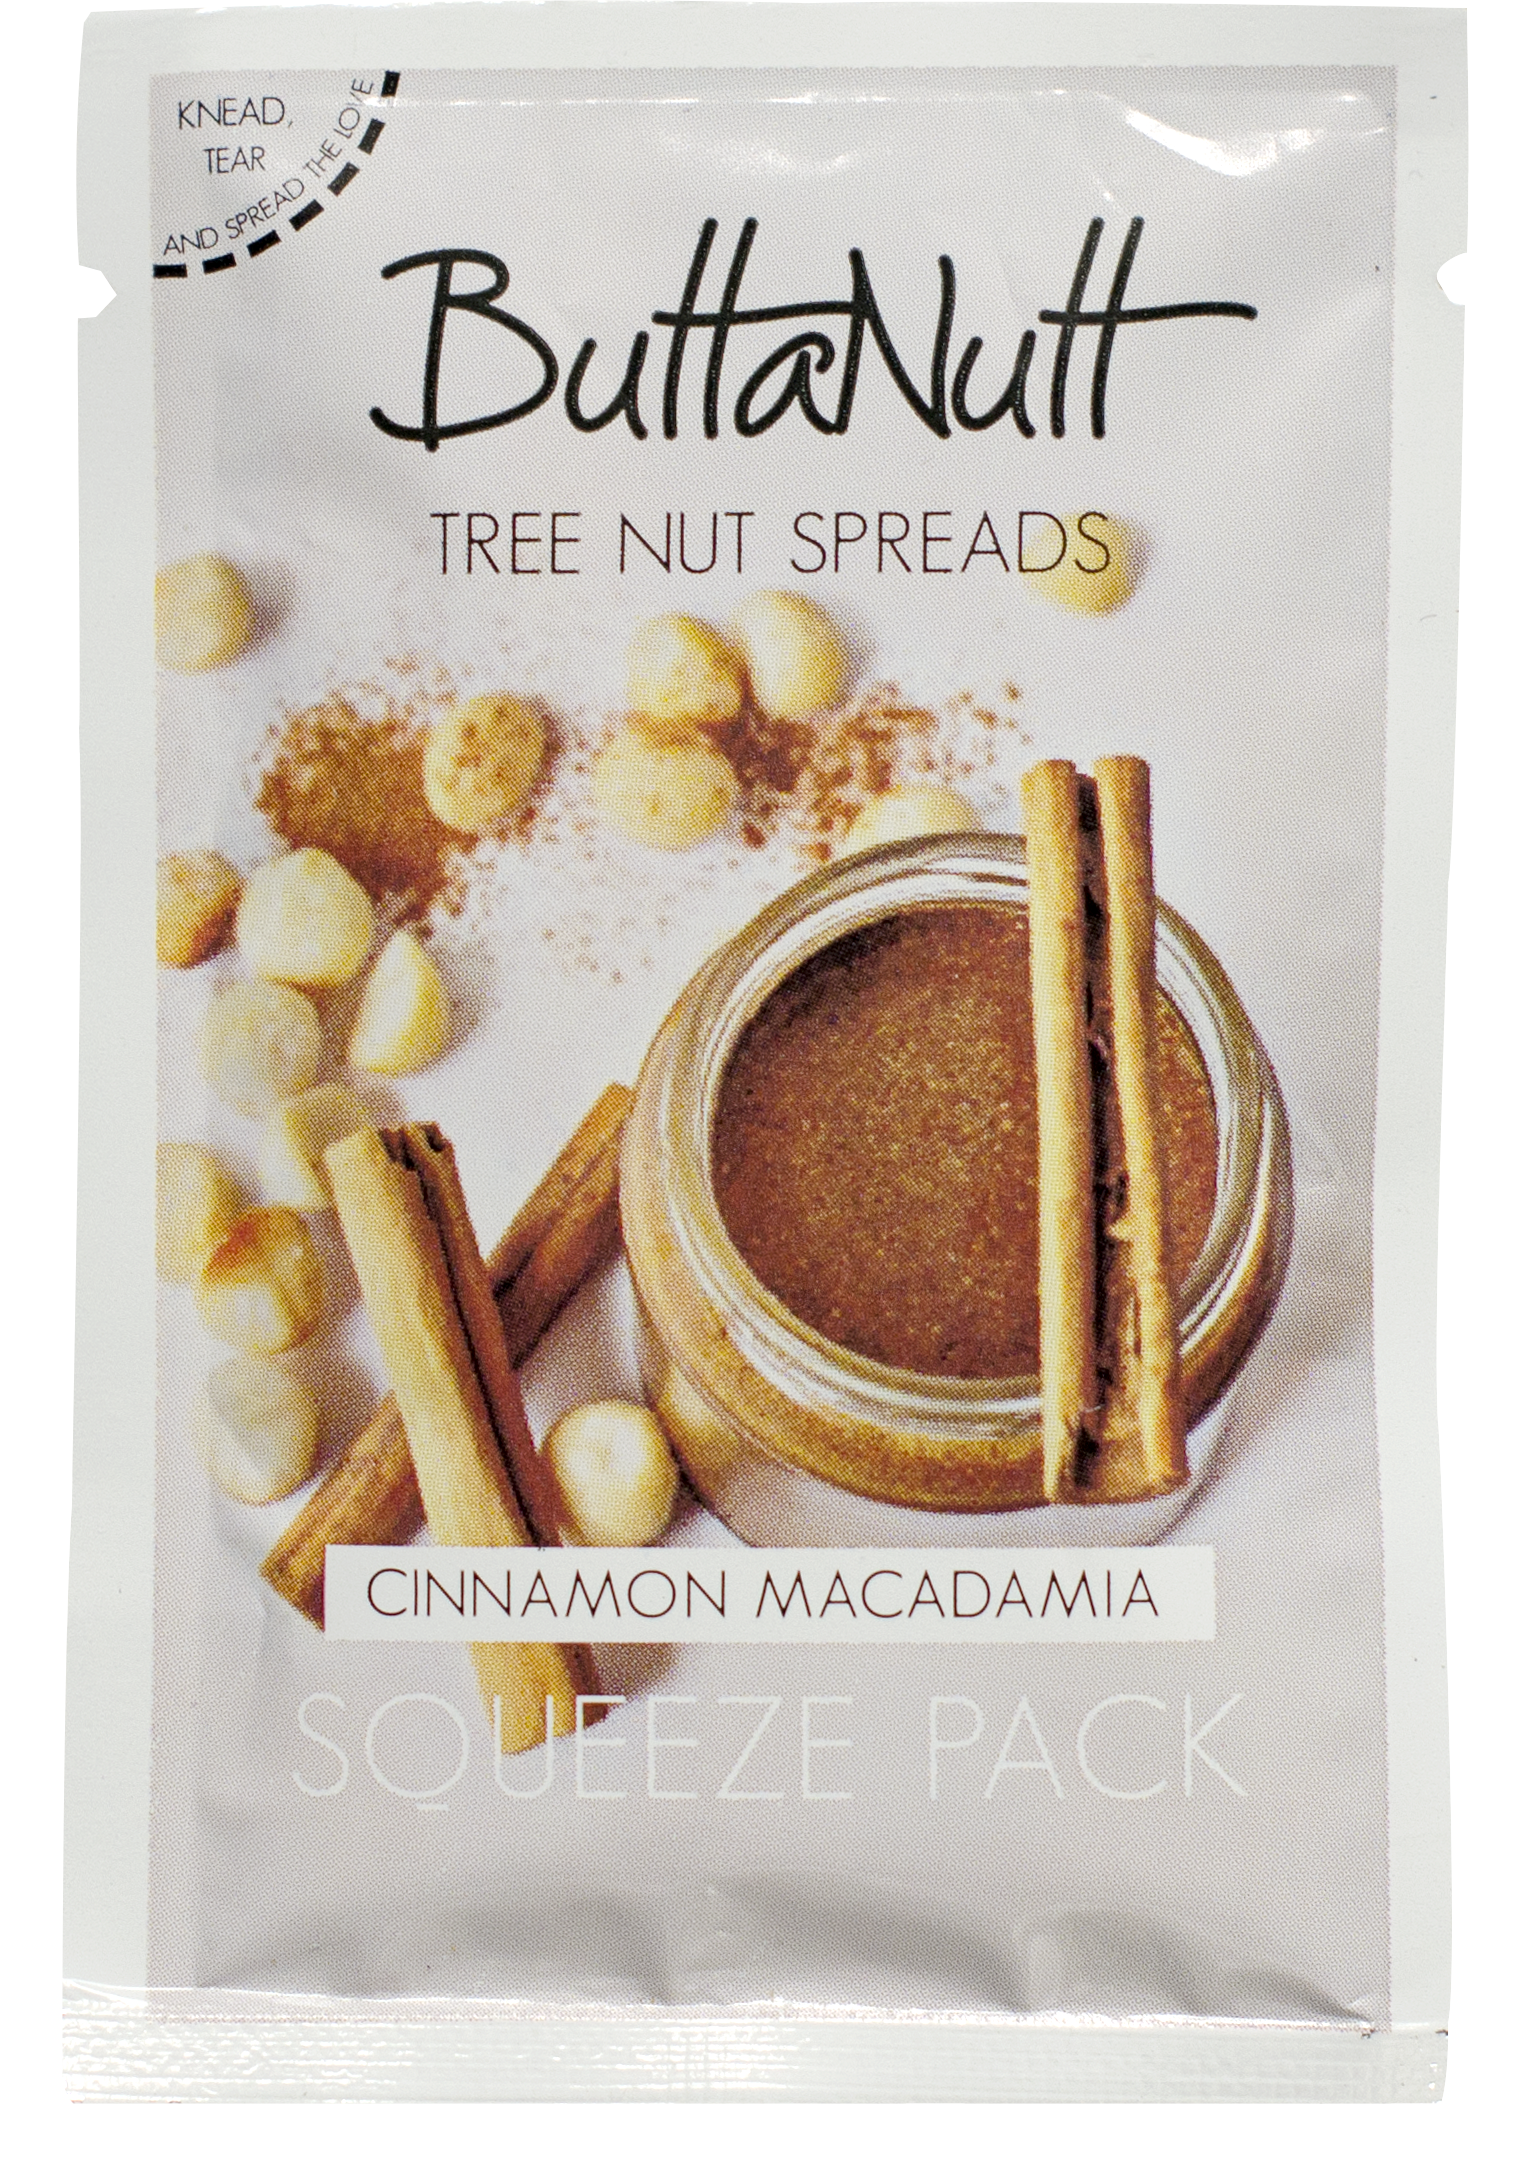 Cinnamon png. Macadamia squeeze pack g